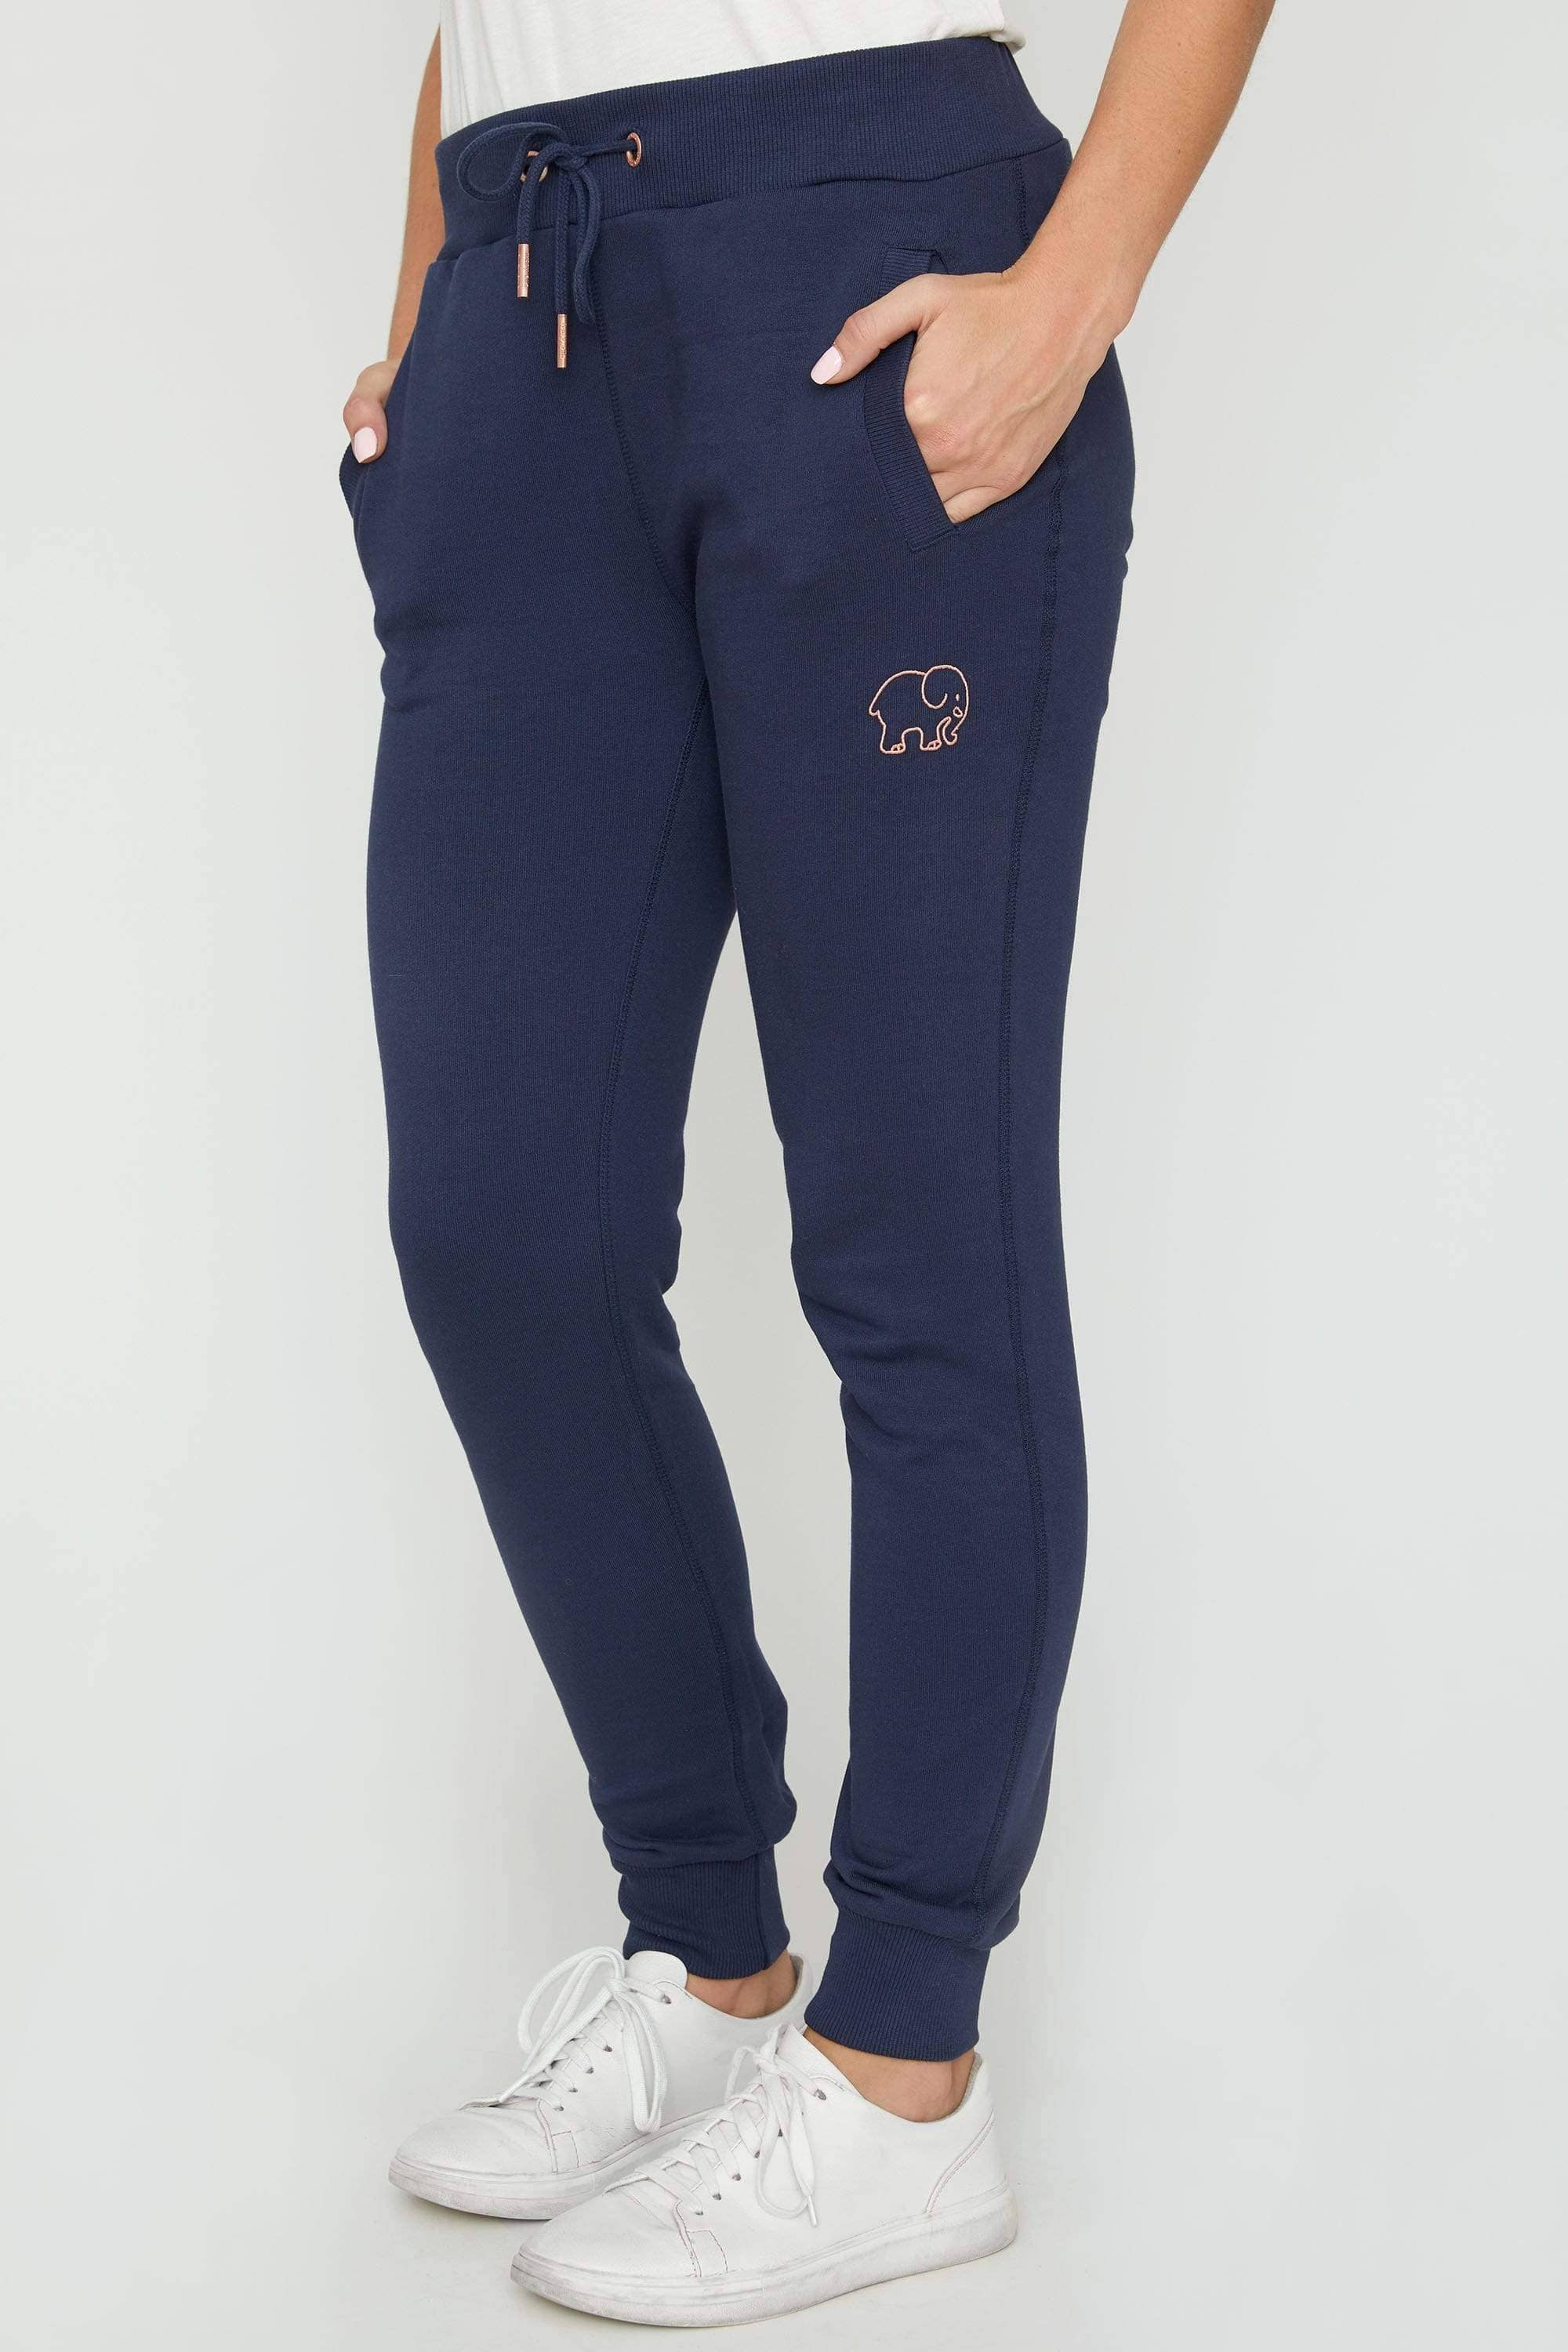 Ivory Ella Women's Bottoms Dark Navy Sierra Organic Jogger